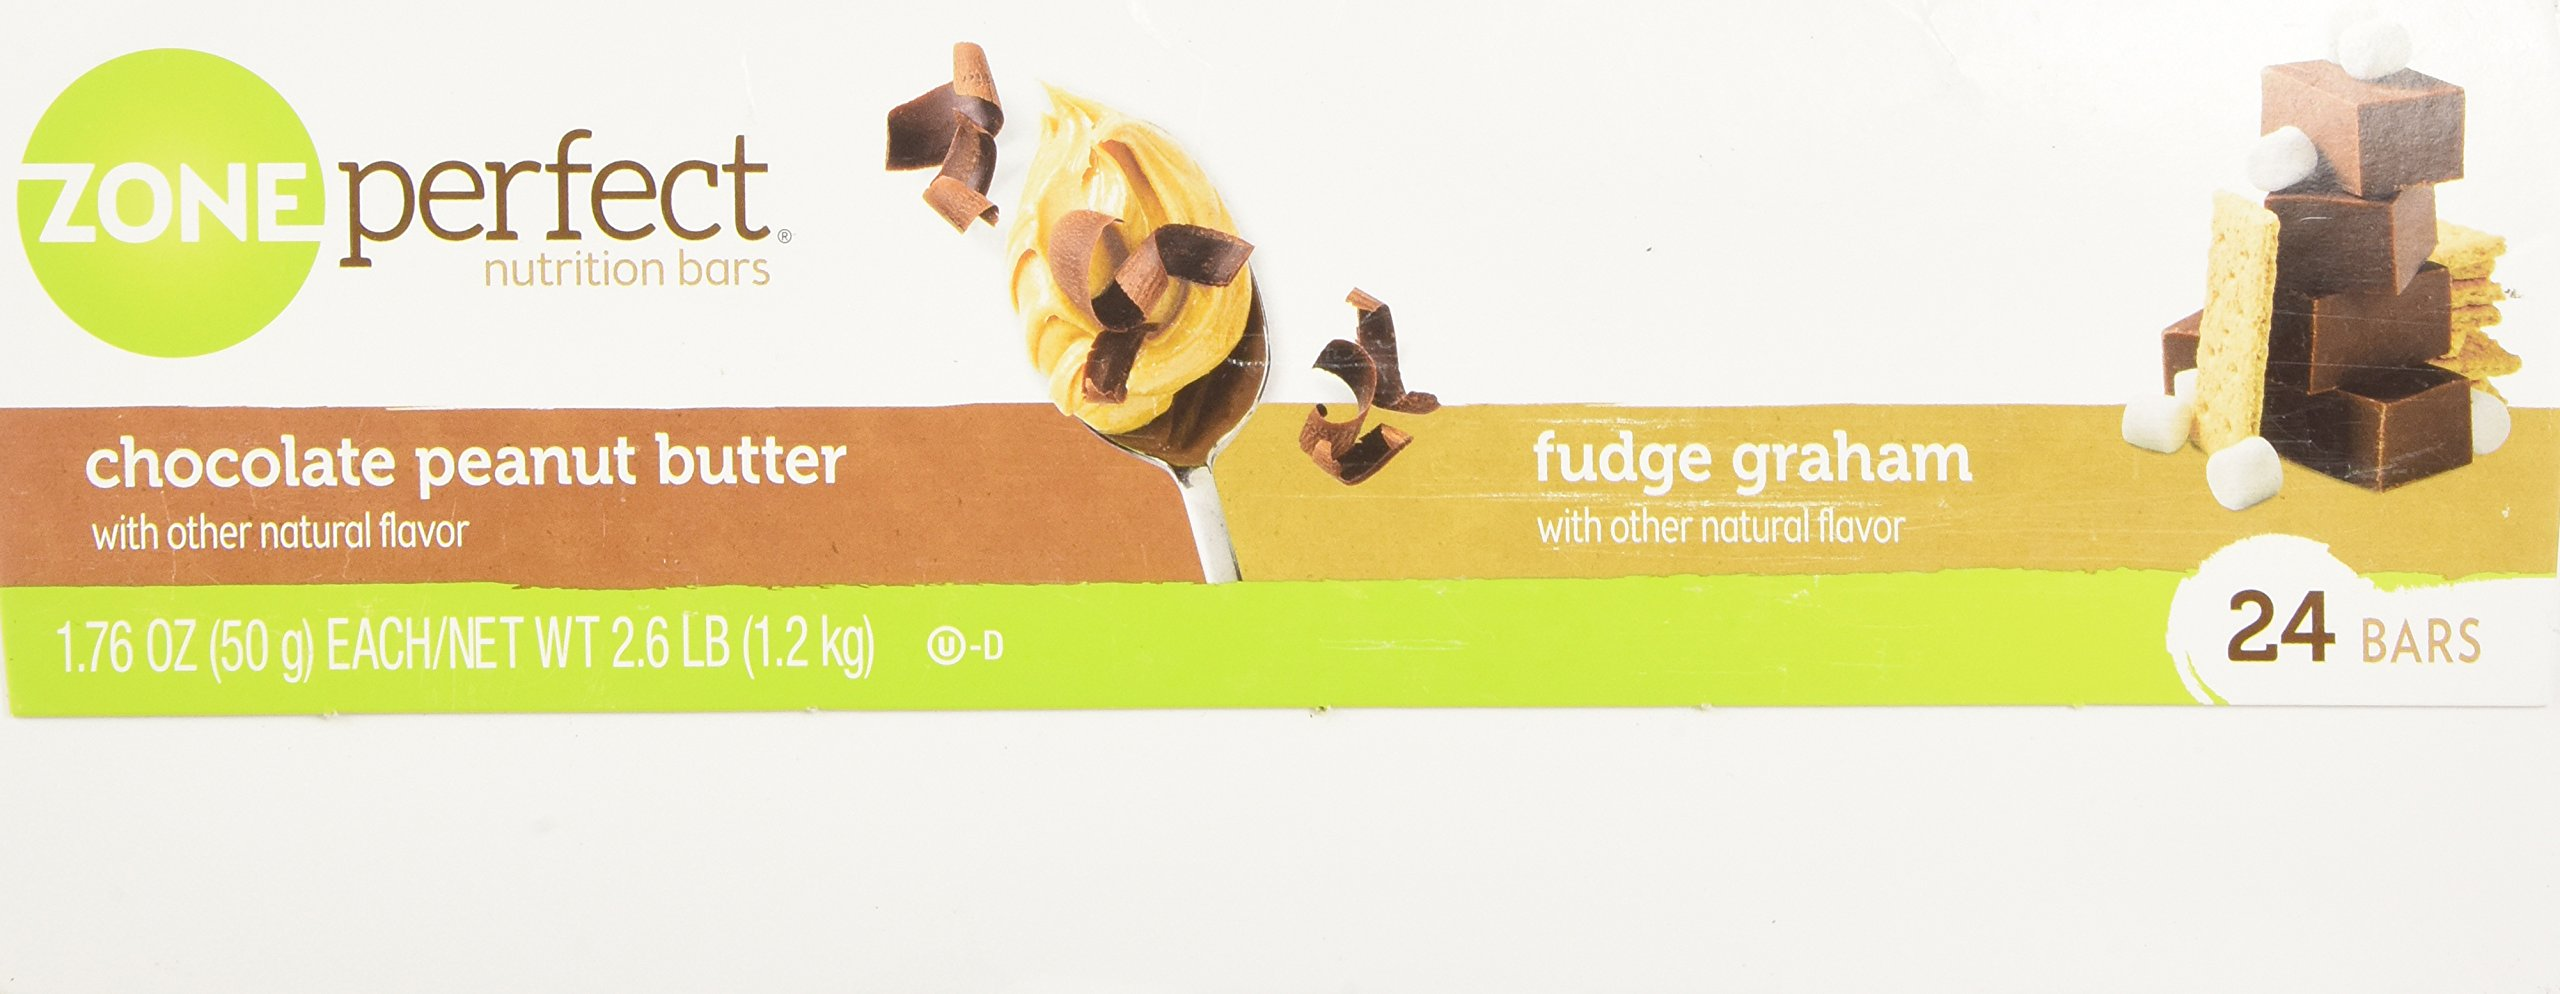 ZonePerfect Nutrition Bars, Fudge Graham/Chocolate Peanut Butter Combo. 1.76 OZ, 24 Bars by Zone Perfect (Image #5)